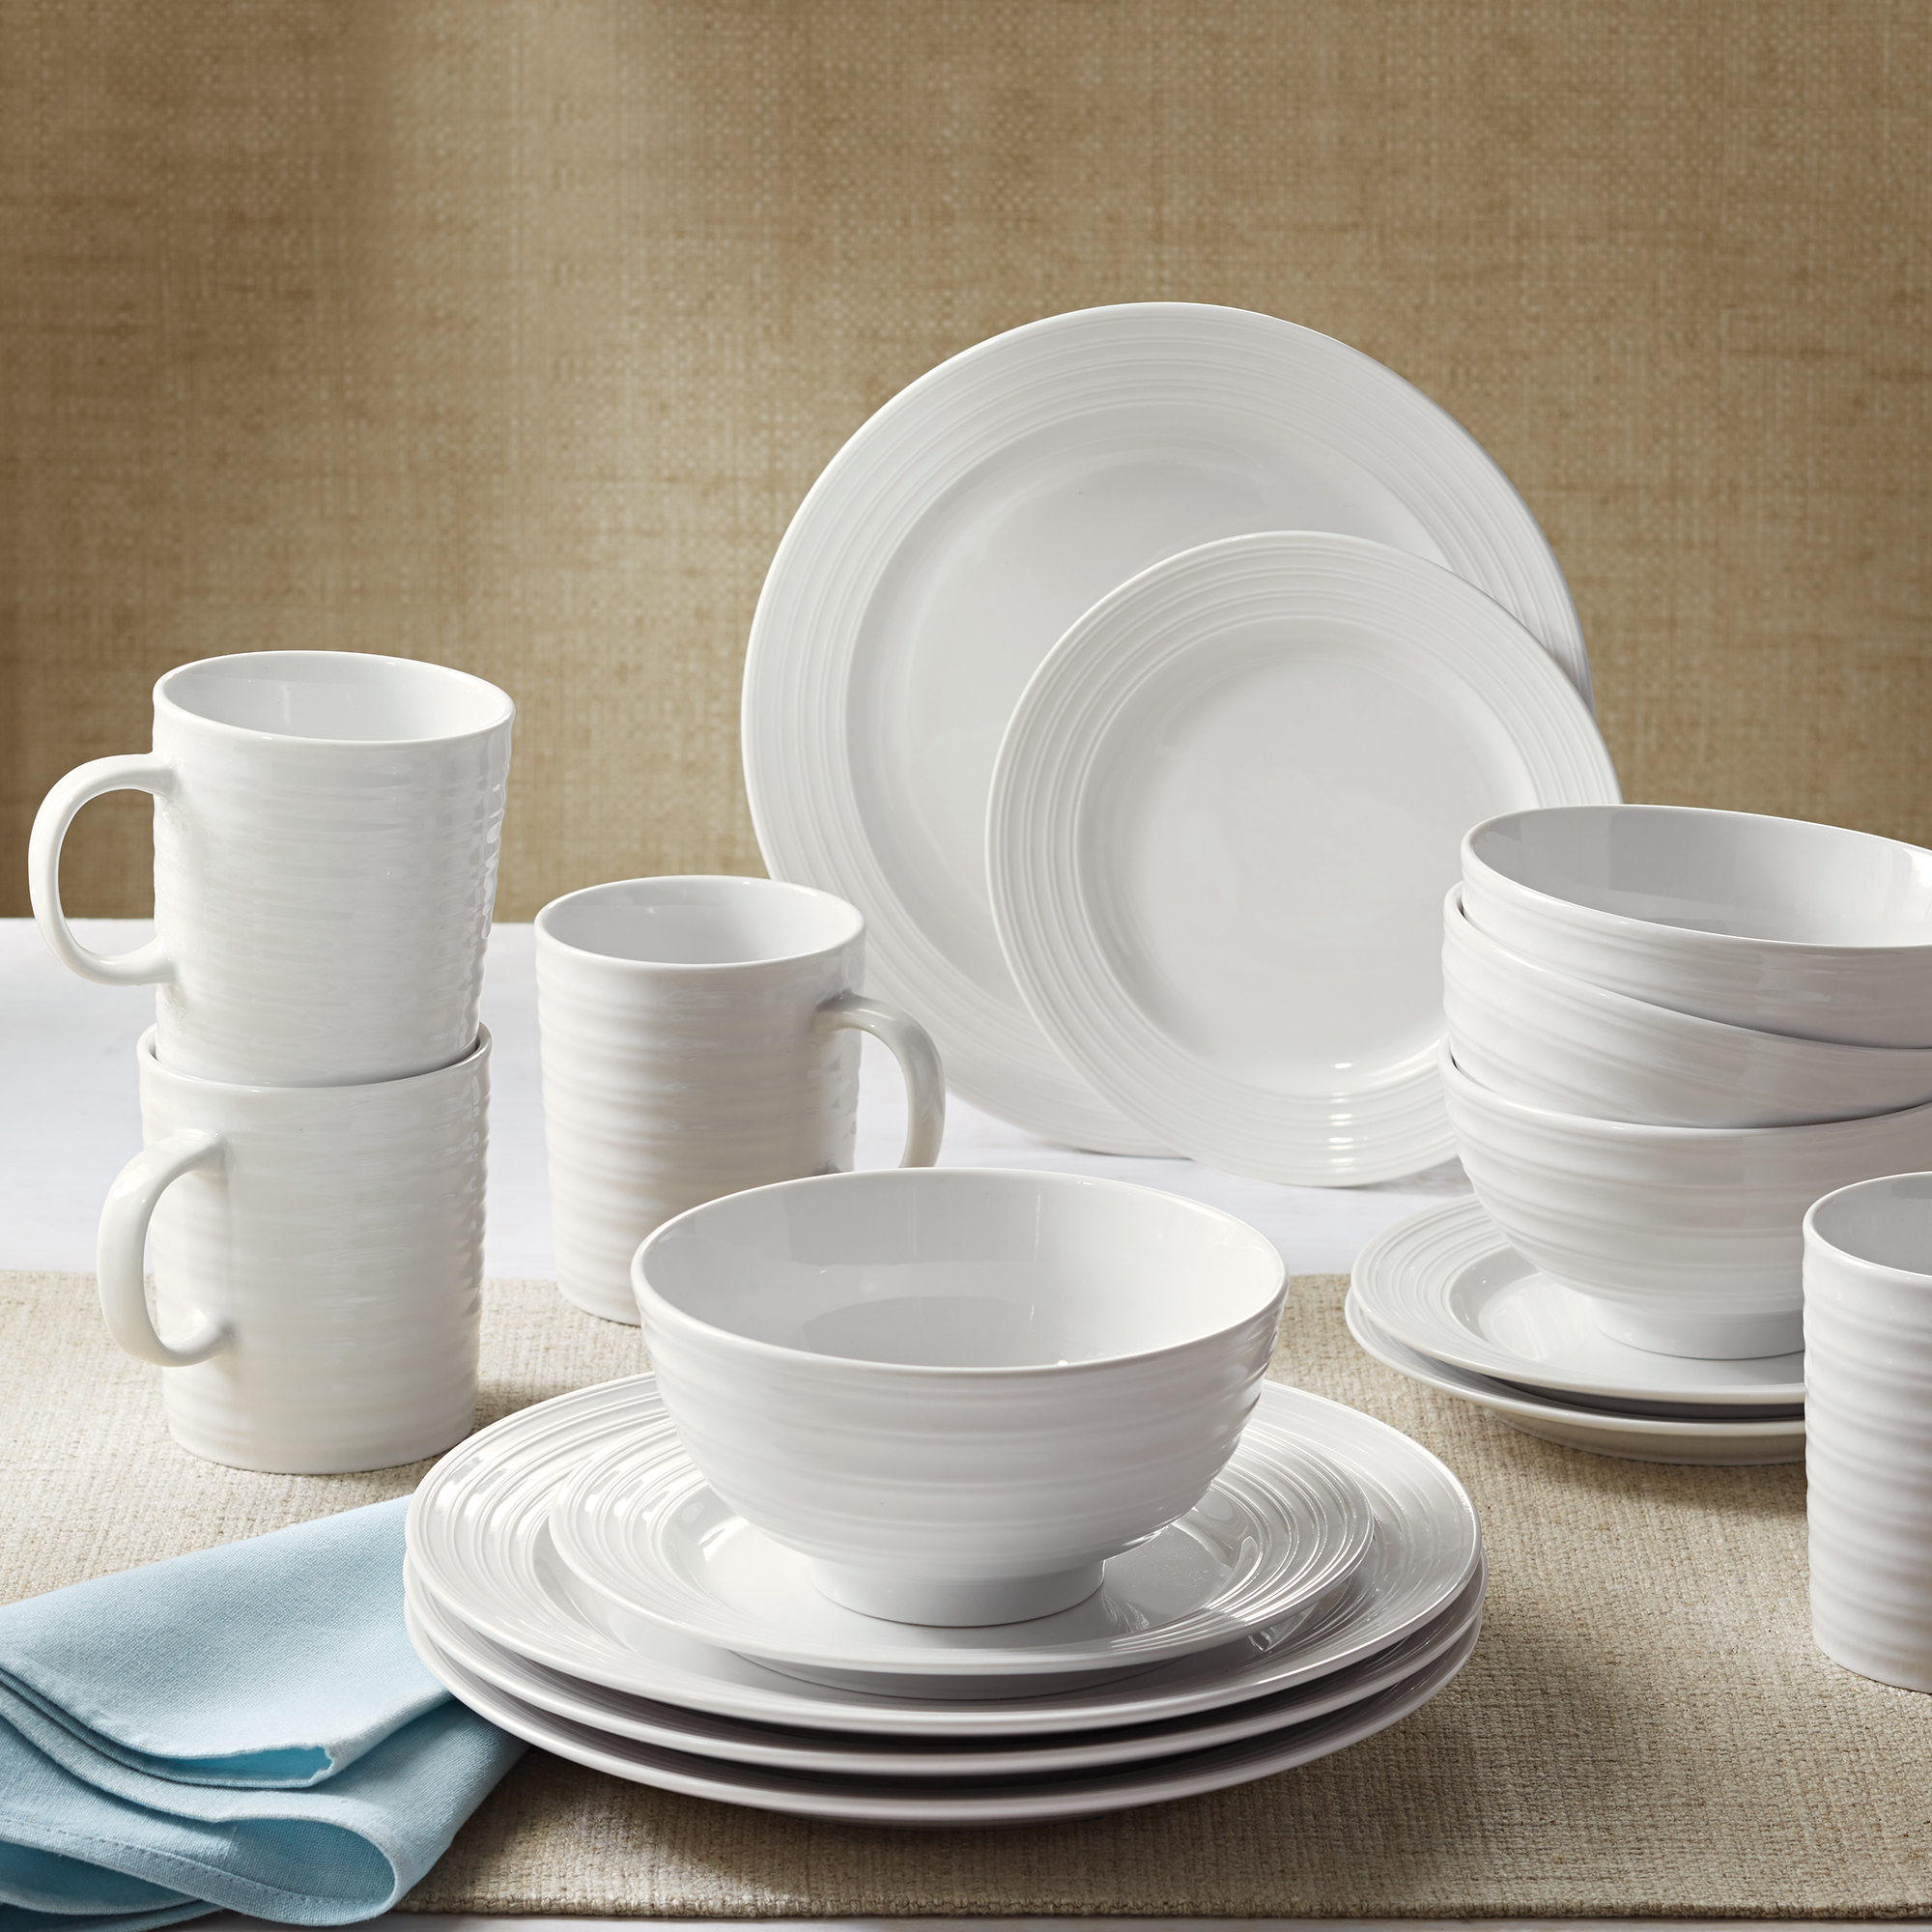 Charmant Better Homes And Gardens Anniston Porcelain 16 Piece Dinnerware Set, White